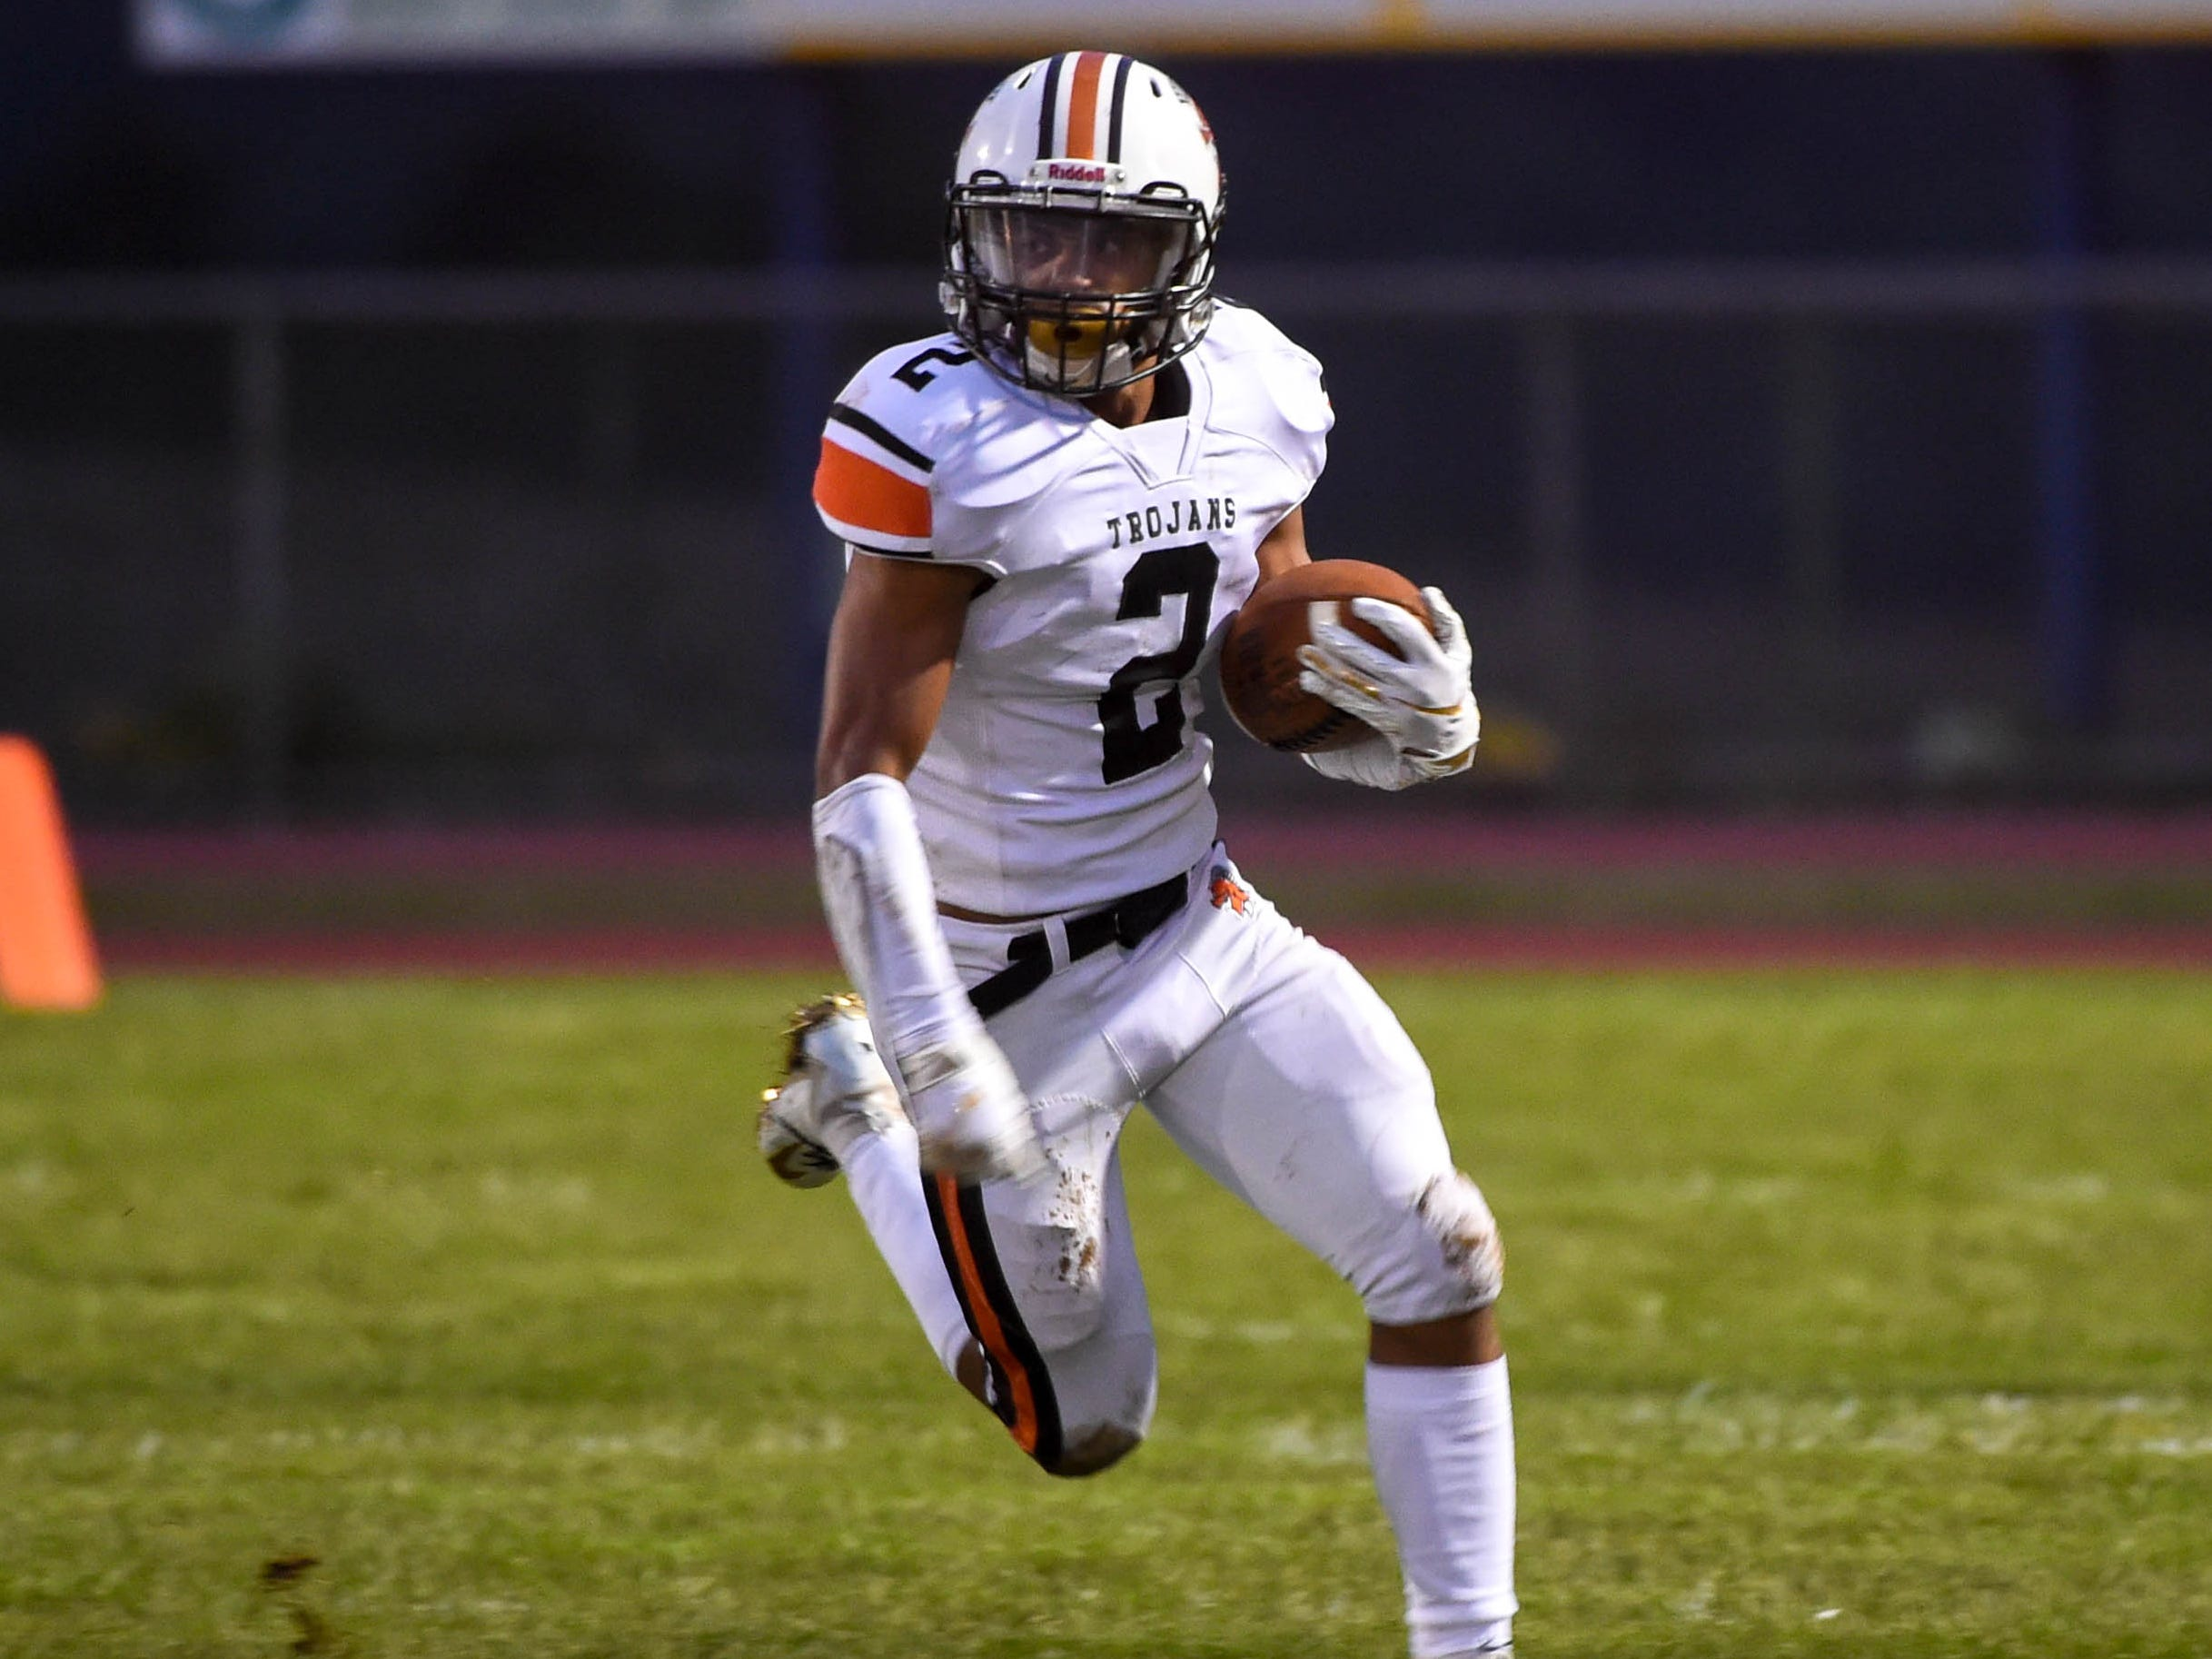 York Suburban's Savion Harrison (2) runs the ball past the defense during their game against Kennard-Dale, Friday September 21, 2018. The York Suburban Trojans beat the Kennard-Dale Rams 31-25.